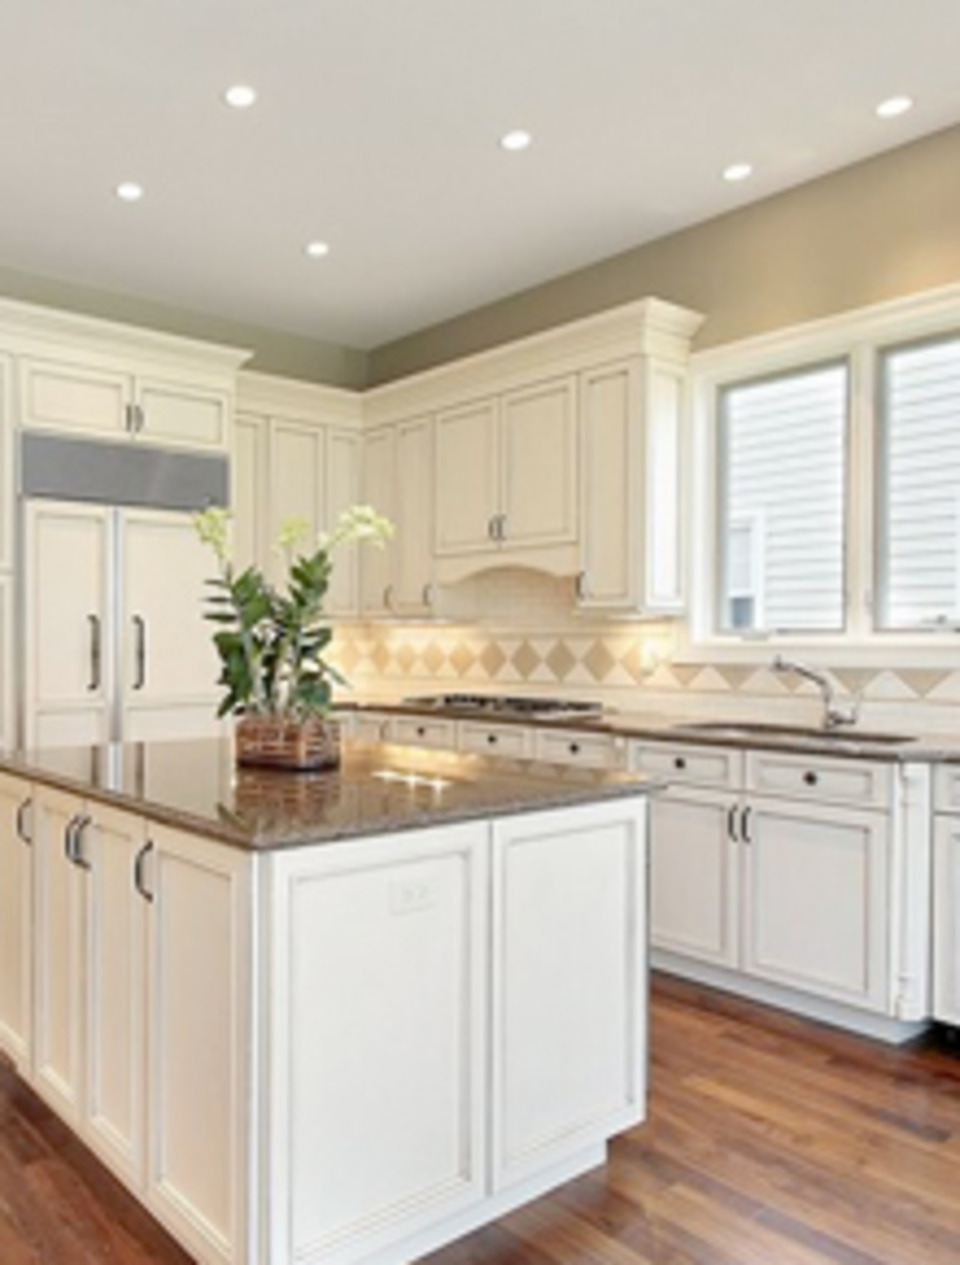 From floor to ceiling, we will help you turn your dream kitchen into a reality